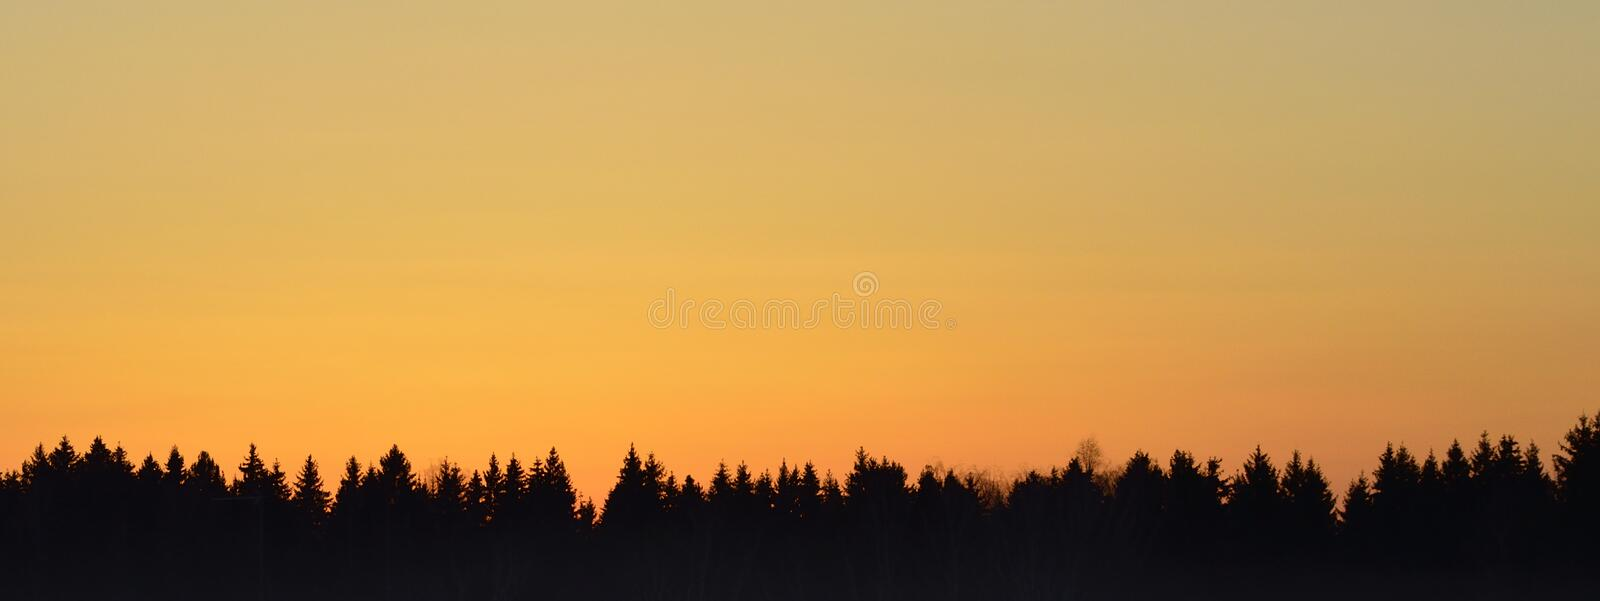 The rising sun on the horizon royalty free stock photos